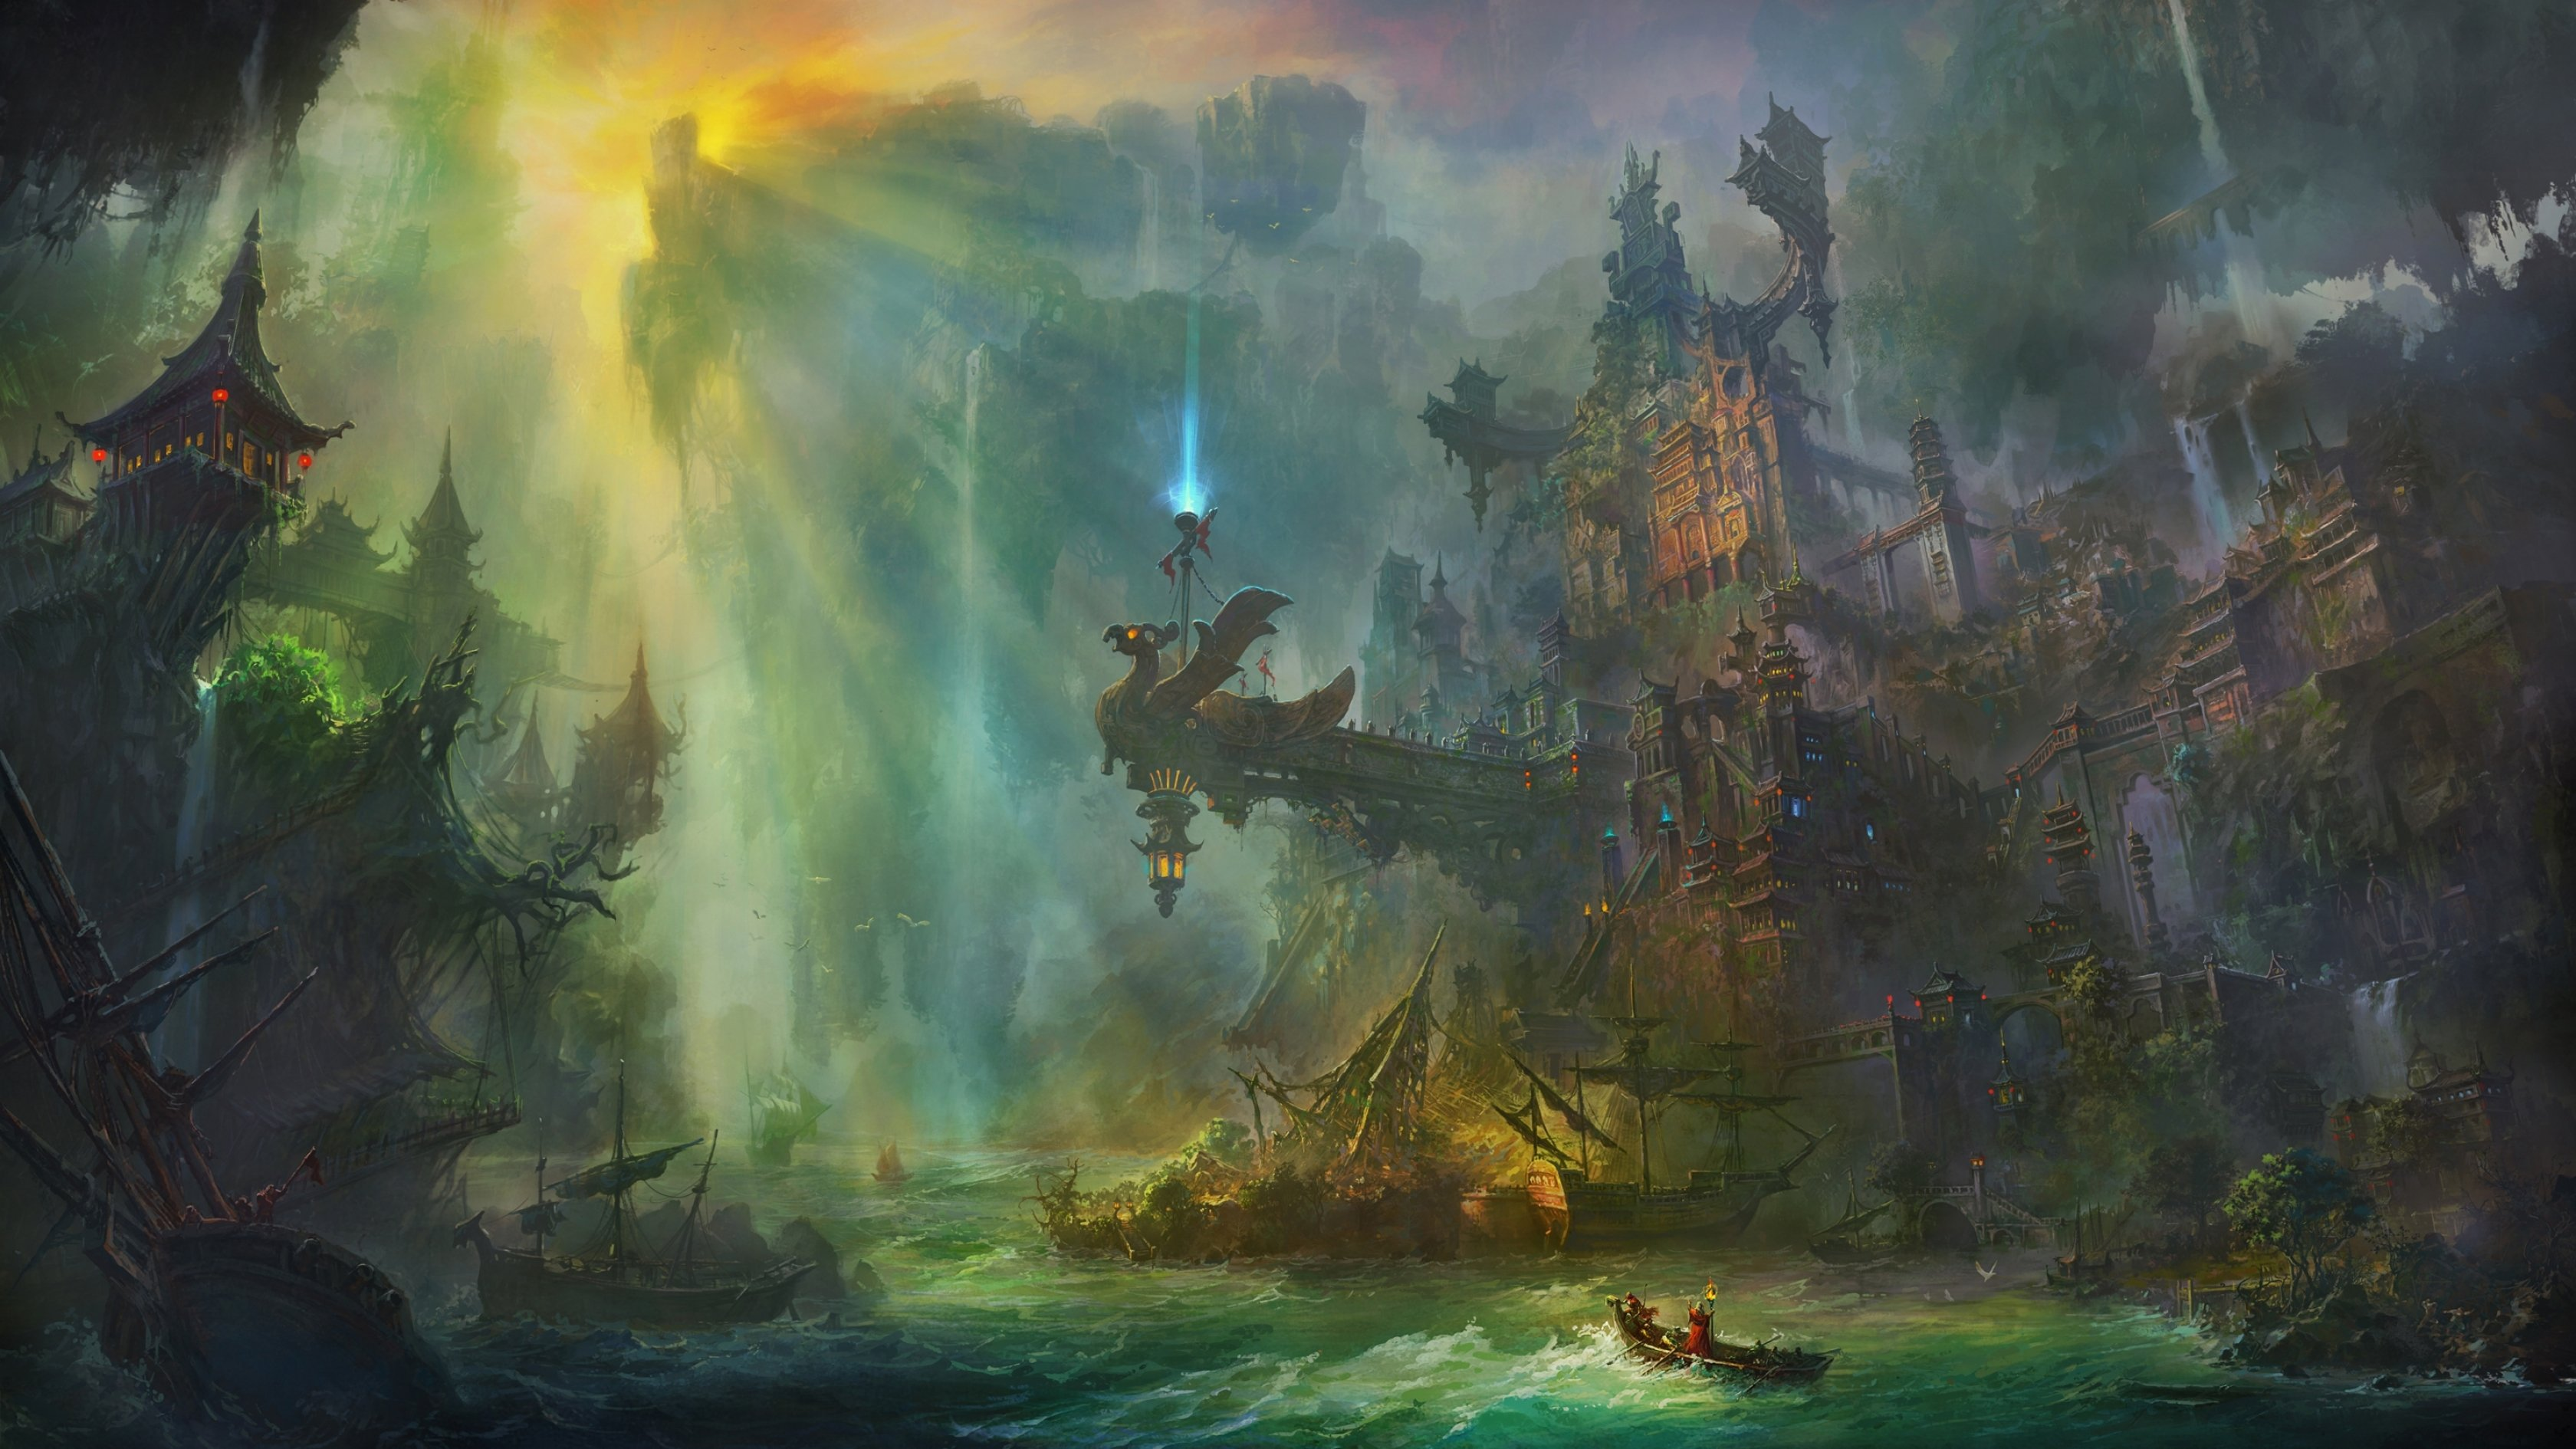 Fantasy landscape art artwork nature wallpaper | 3360x1890 ...